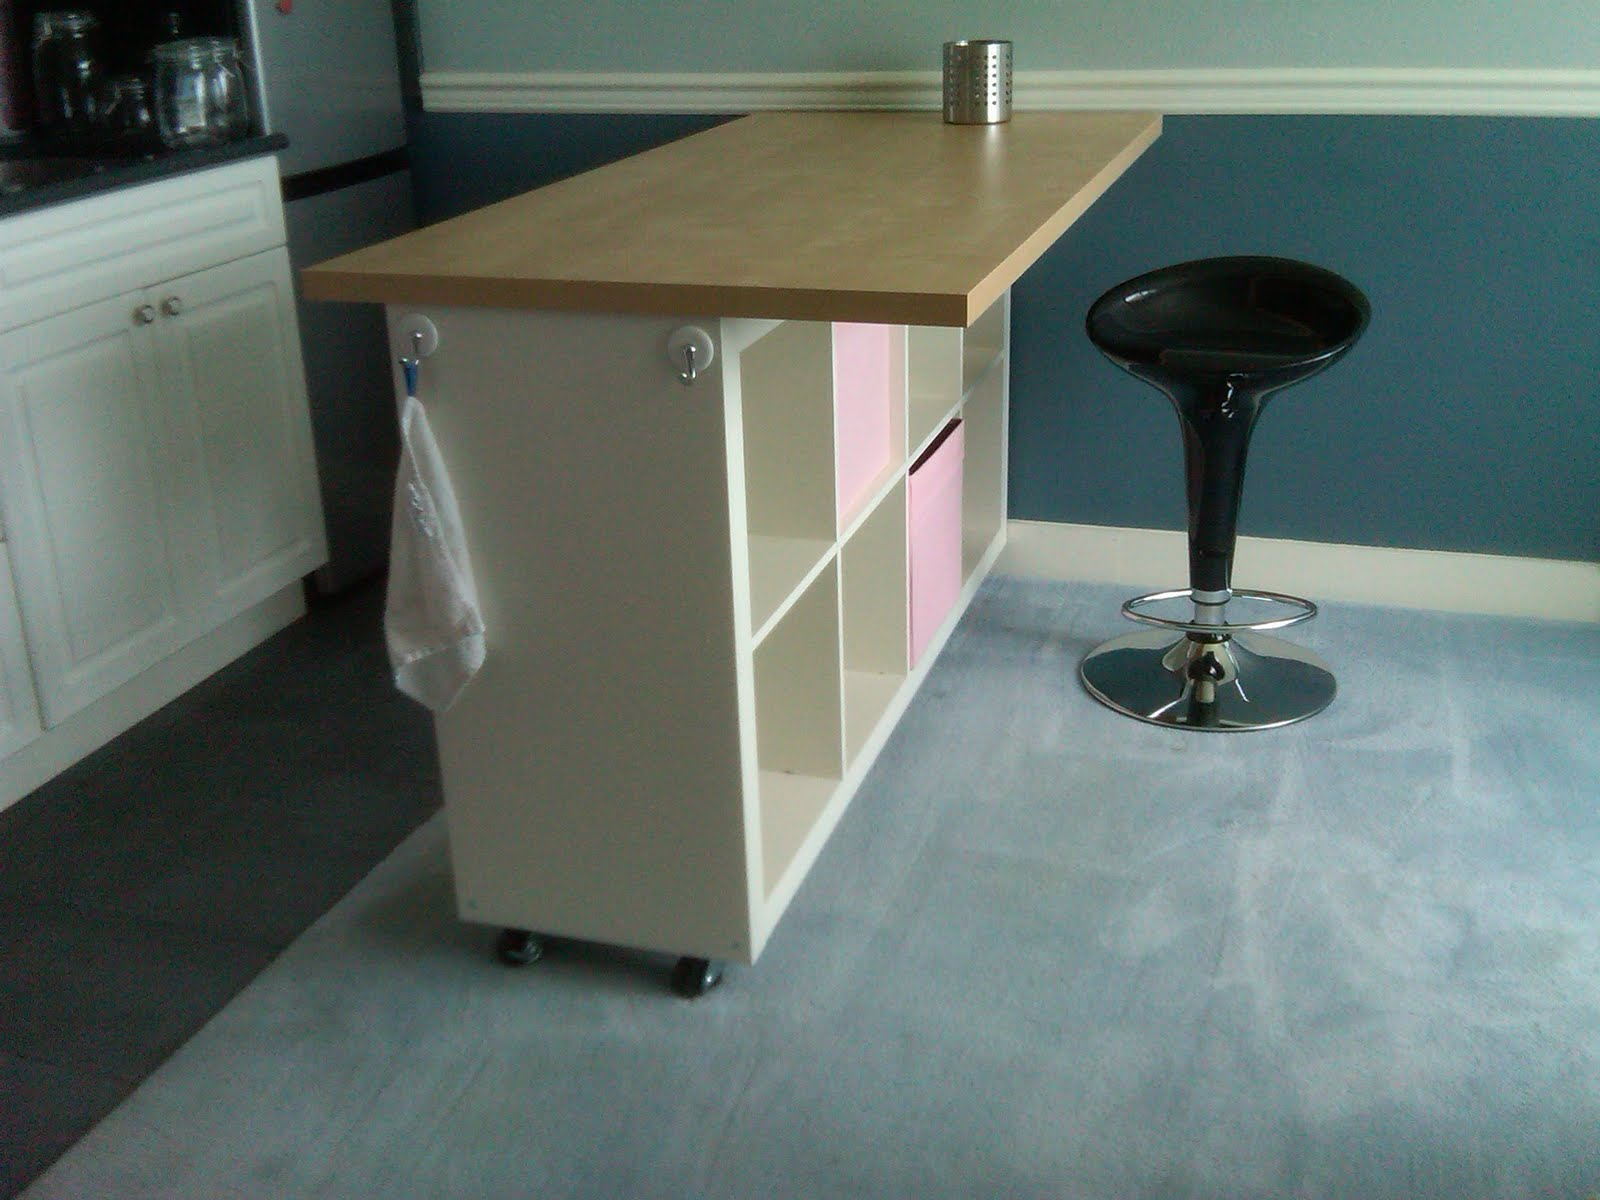 Ikea counter height table design ideas homesfeed - Barra de bar para salon ...